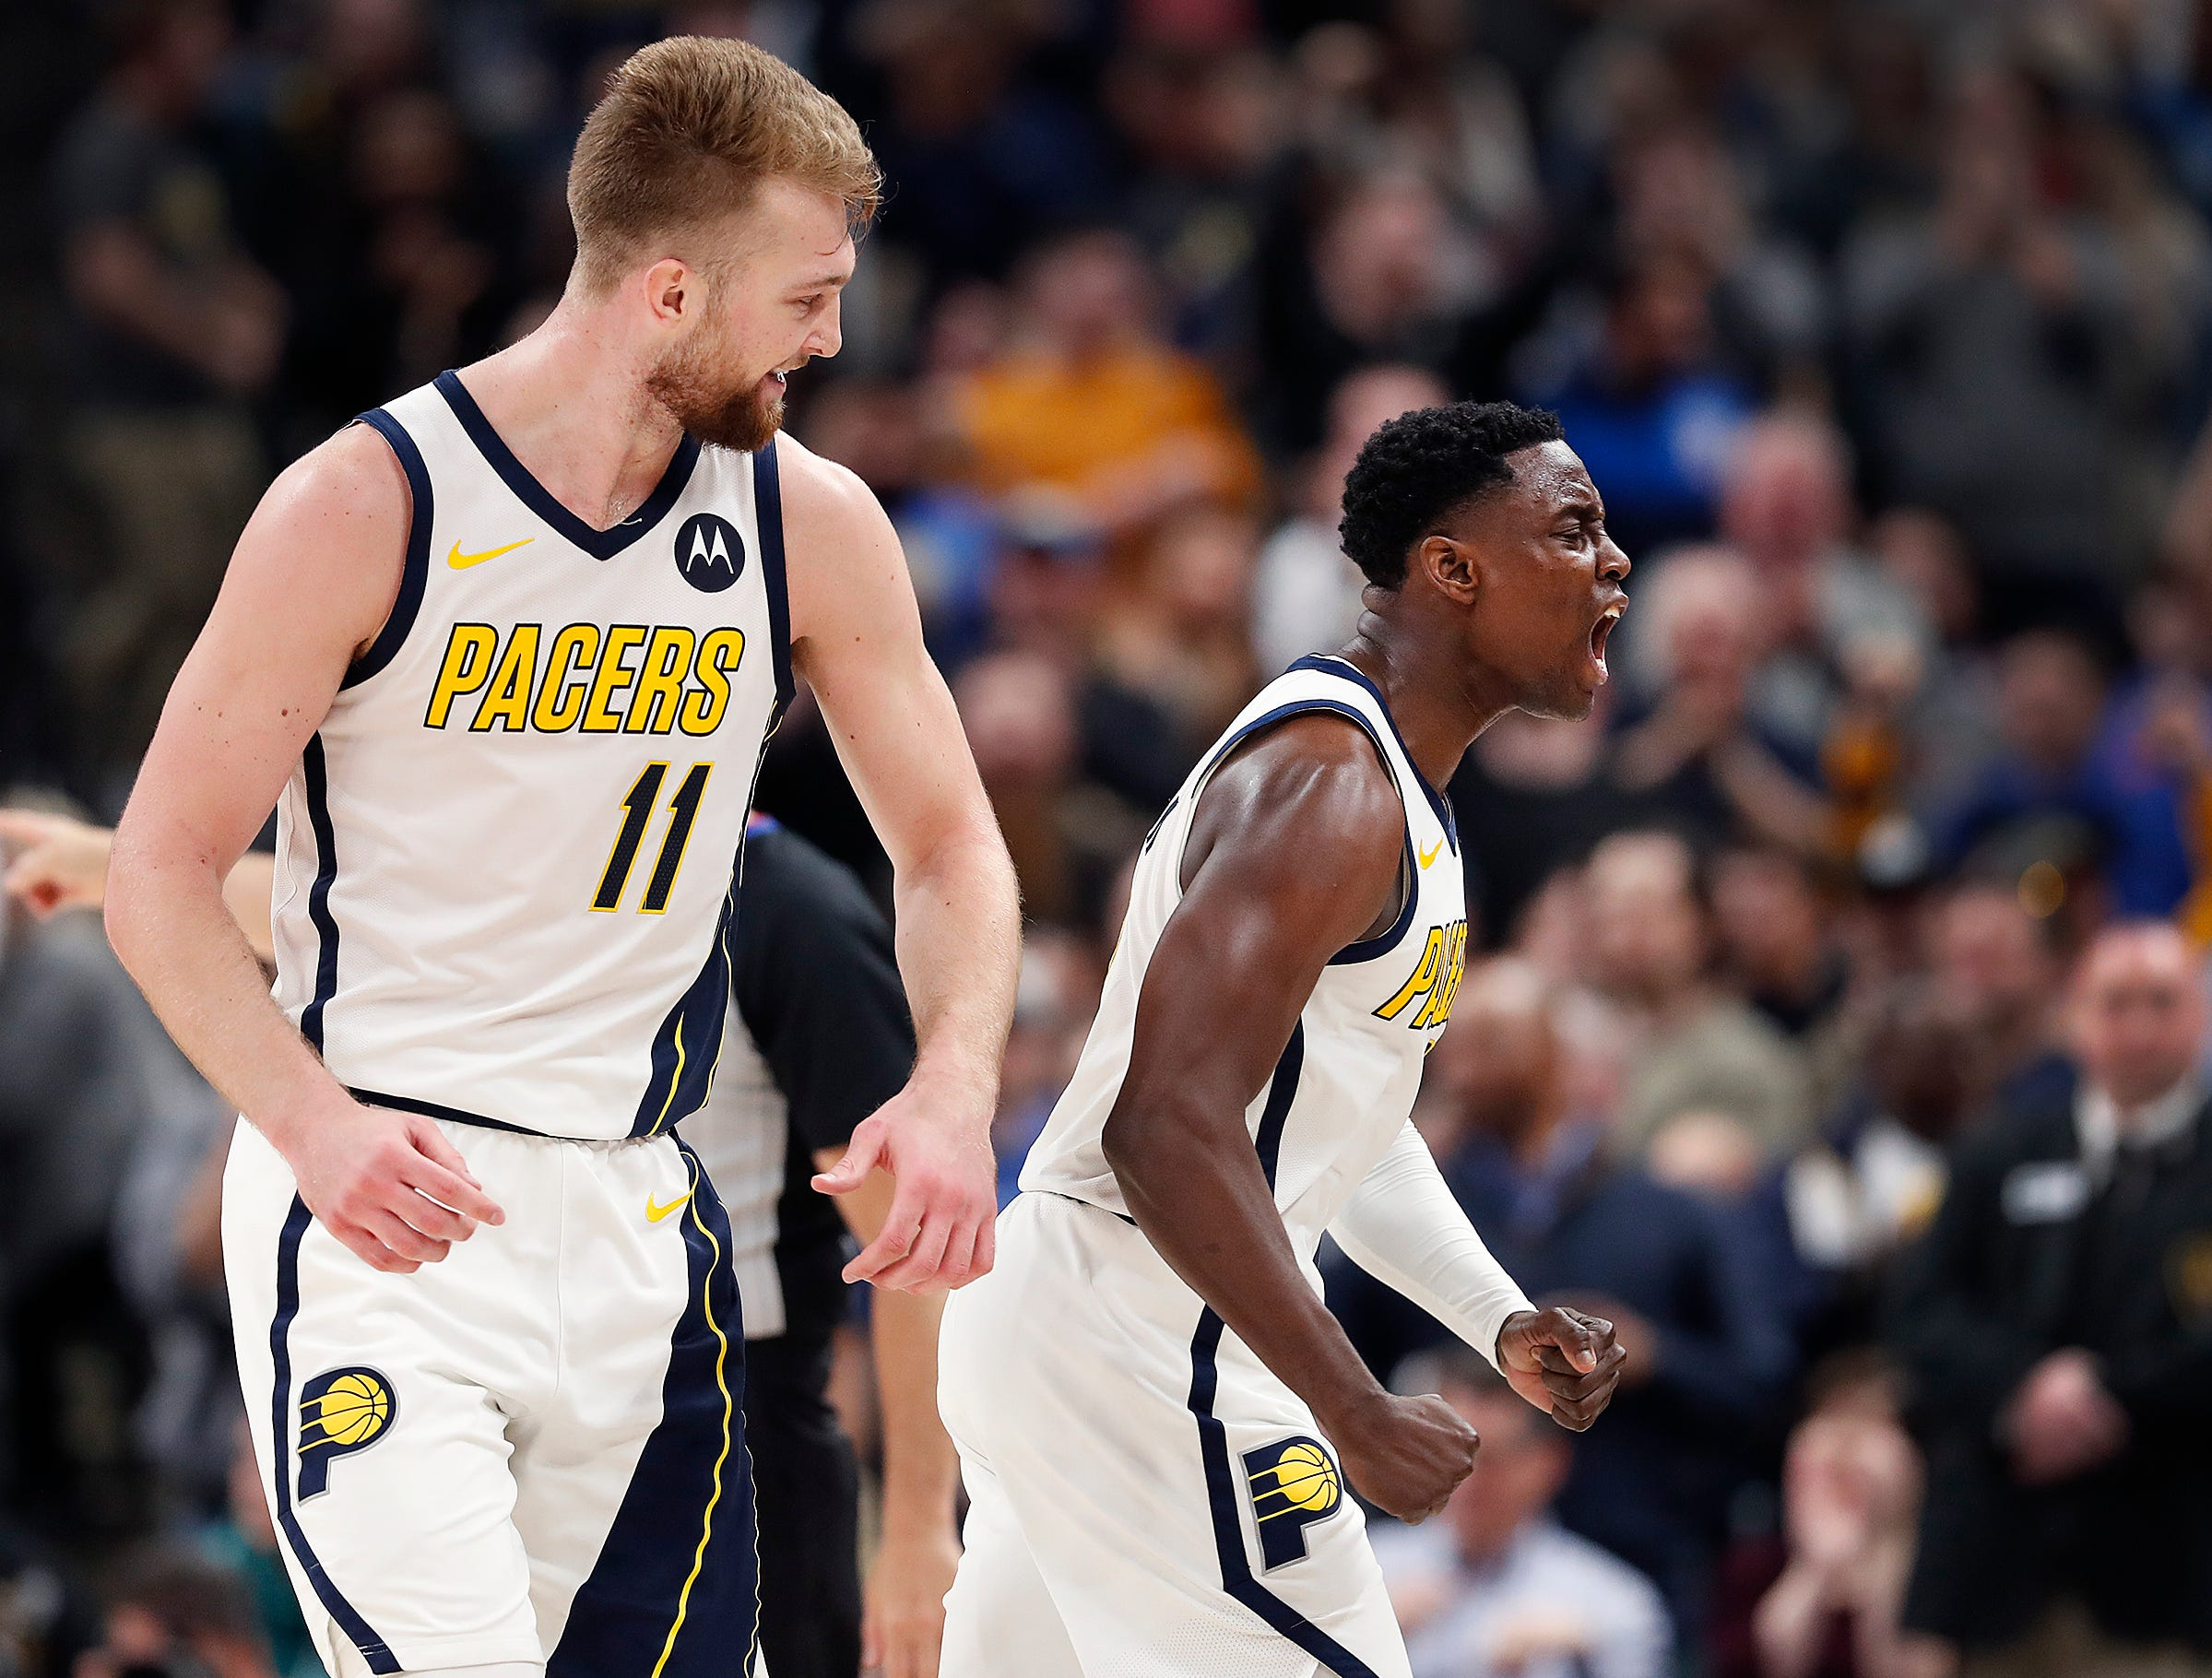 This is the Indiana Pacers 2018-19 schedule and results